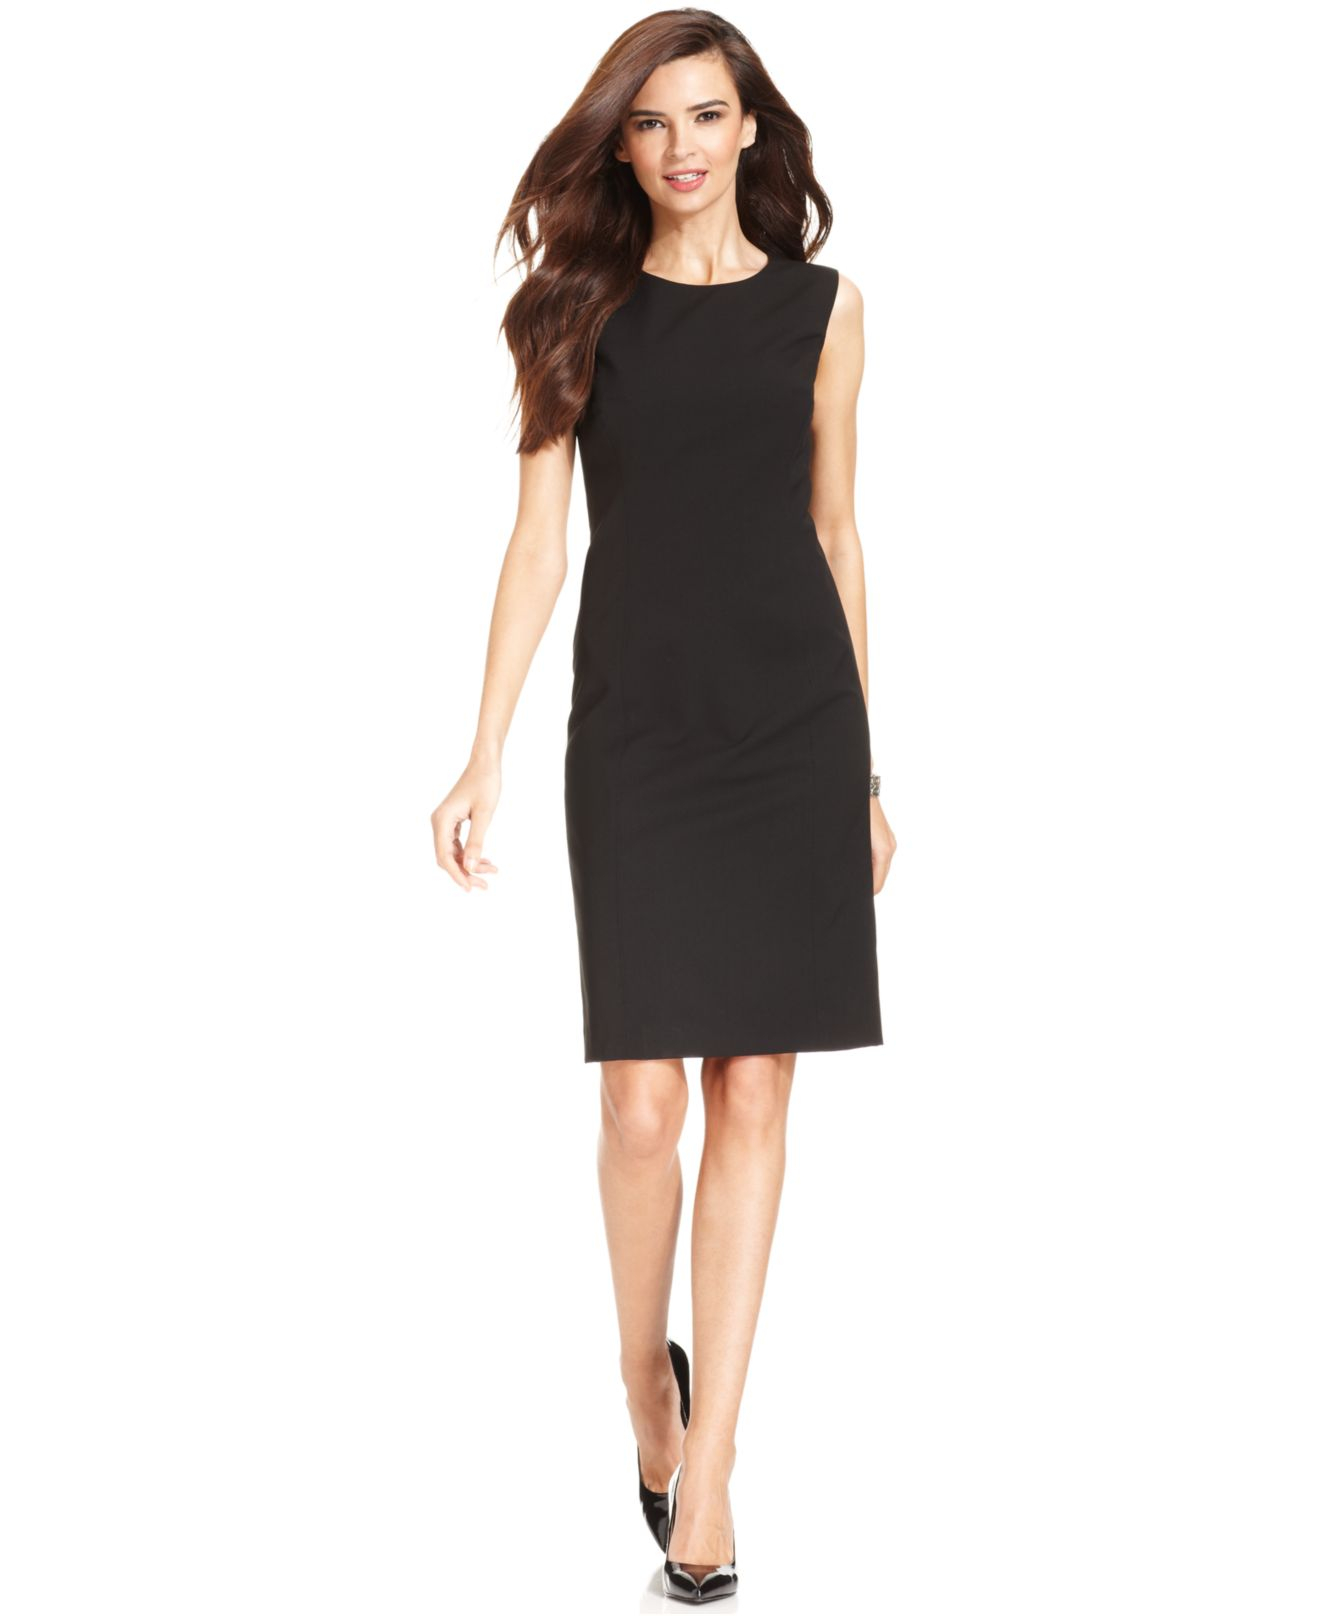 lyst jones new york sleeveless sheath dress in black. Black Bedroom Furniture Sets. Home Design Ideas